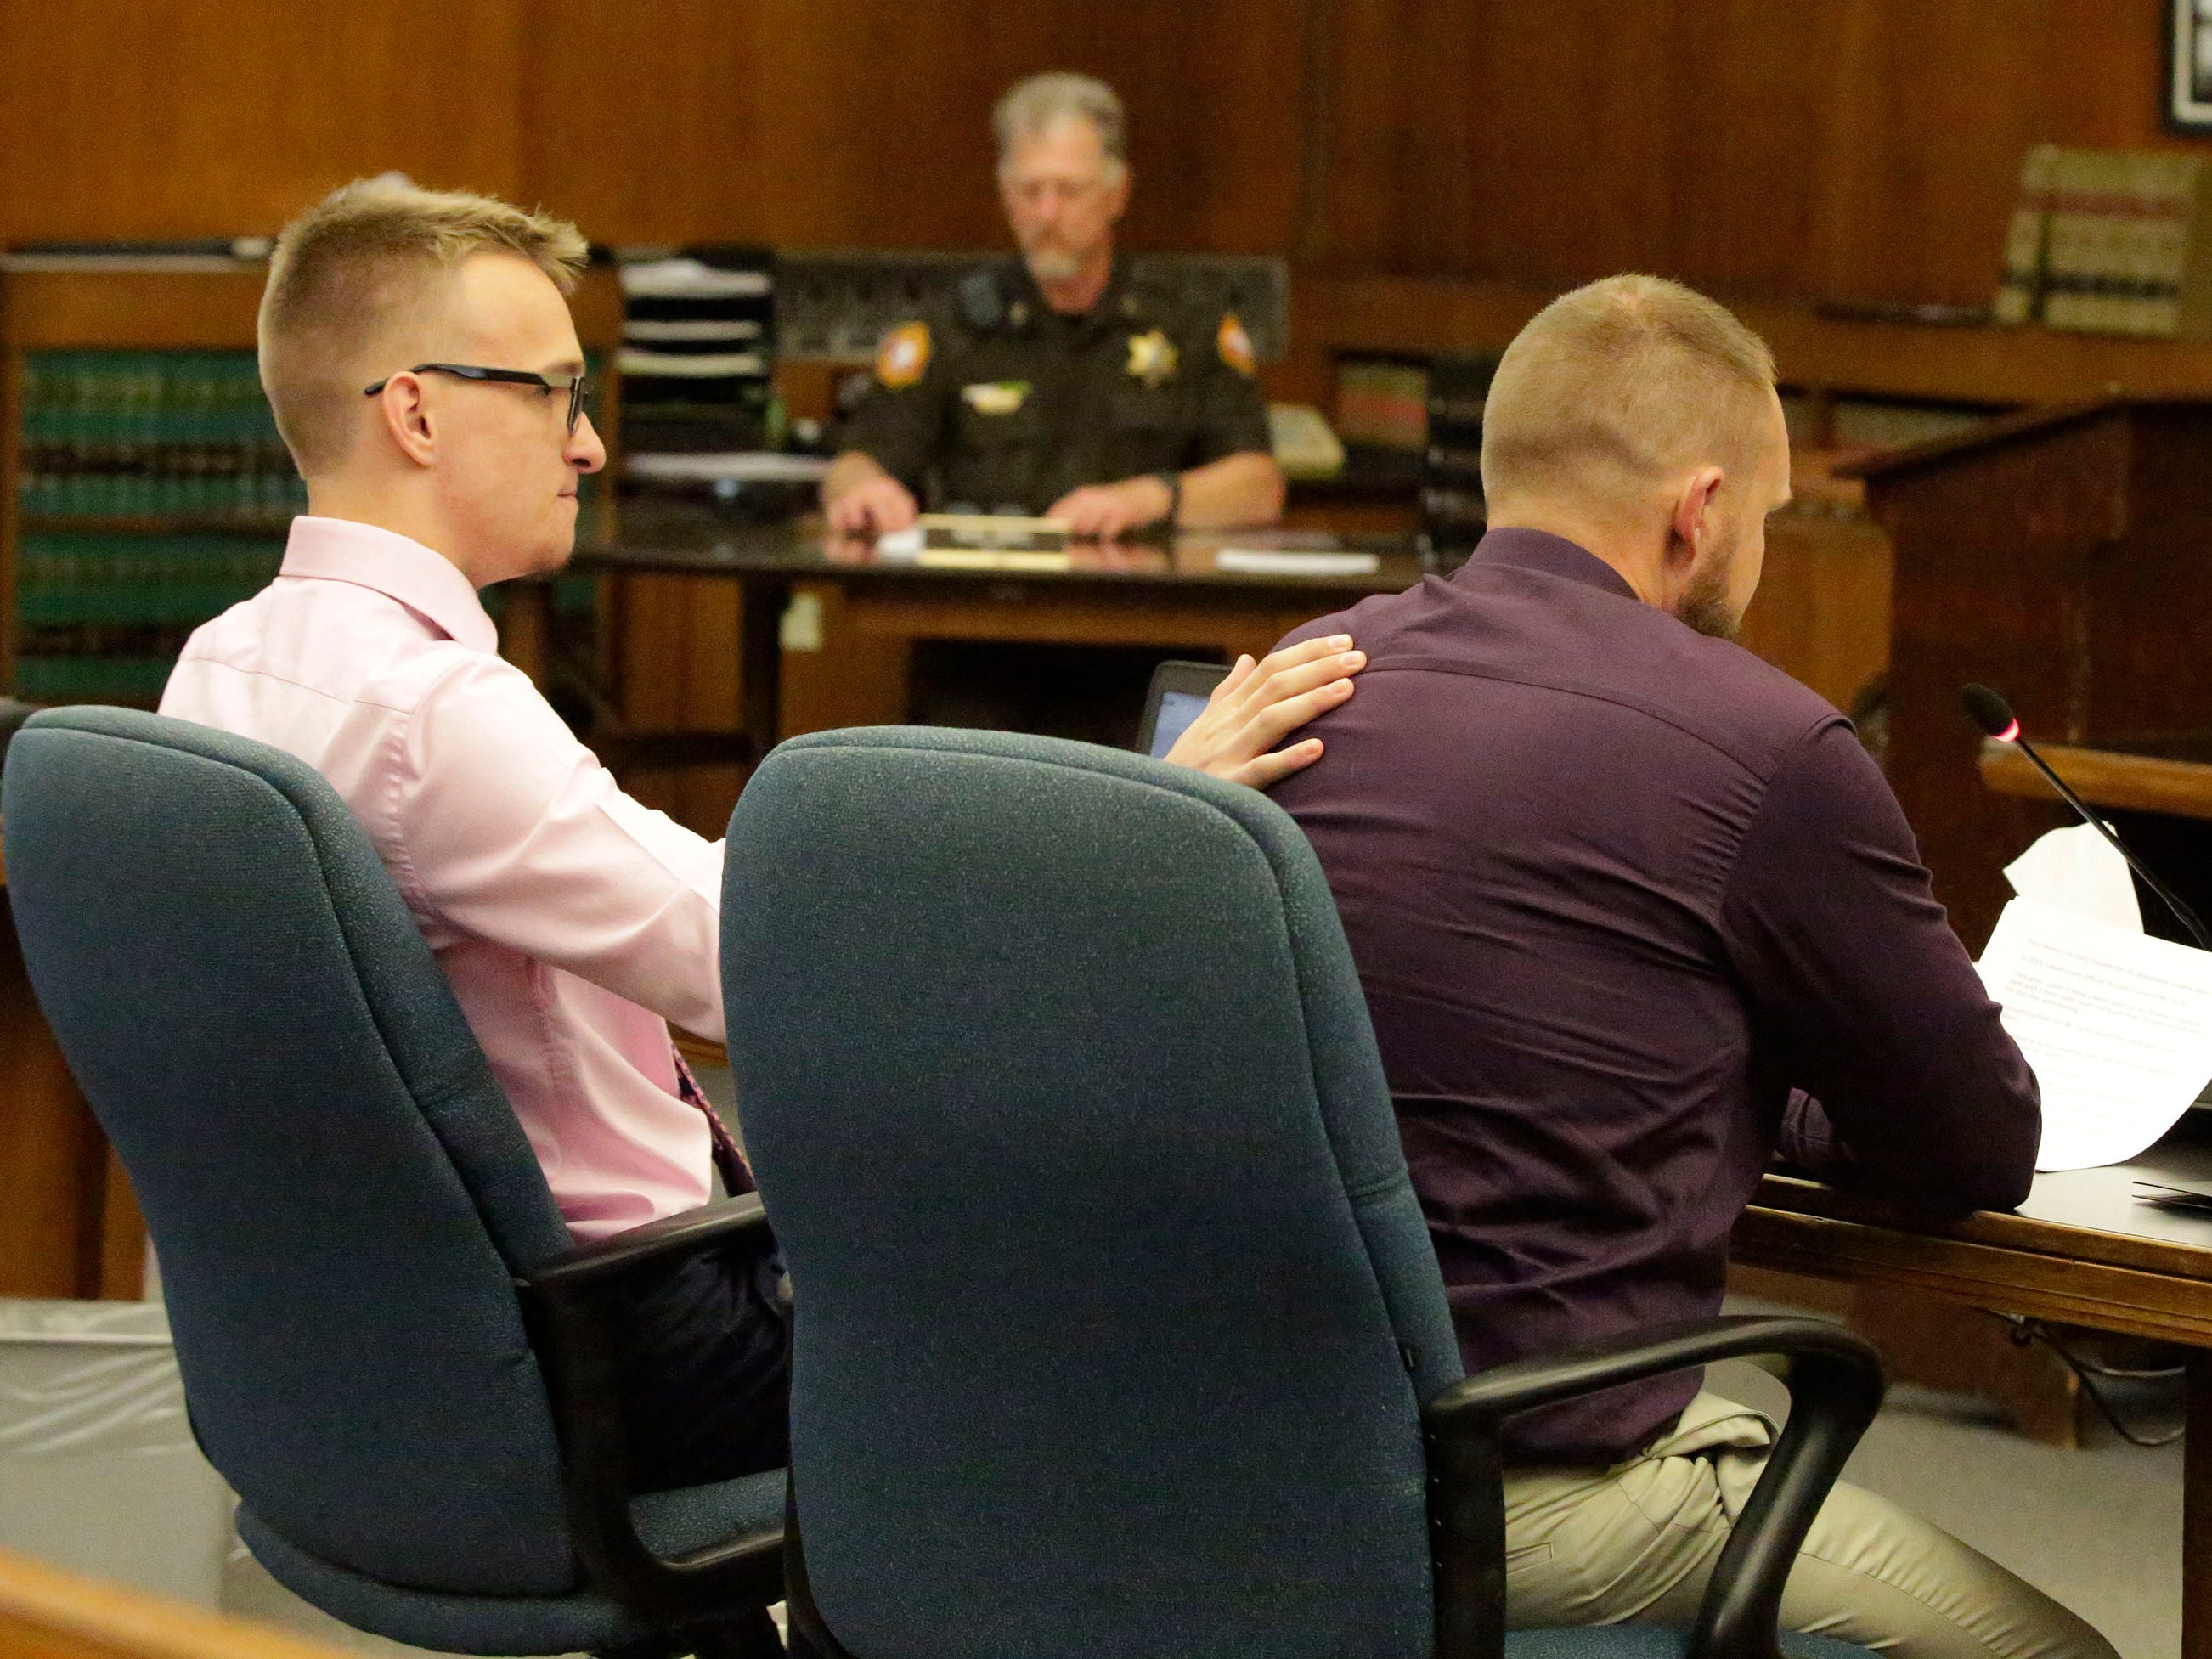 Joshua Mikula, left, puts his hand on his dad Charles Mikula, as the elder Mikula reads an impact statement in Sheboygan County Circuit Court Branch 1 during the sentencing hearing for Christy Rose Tuchel, Friday, October 5, 2018, in Sheboygan, Wis.